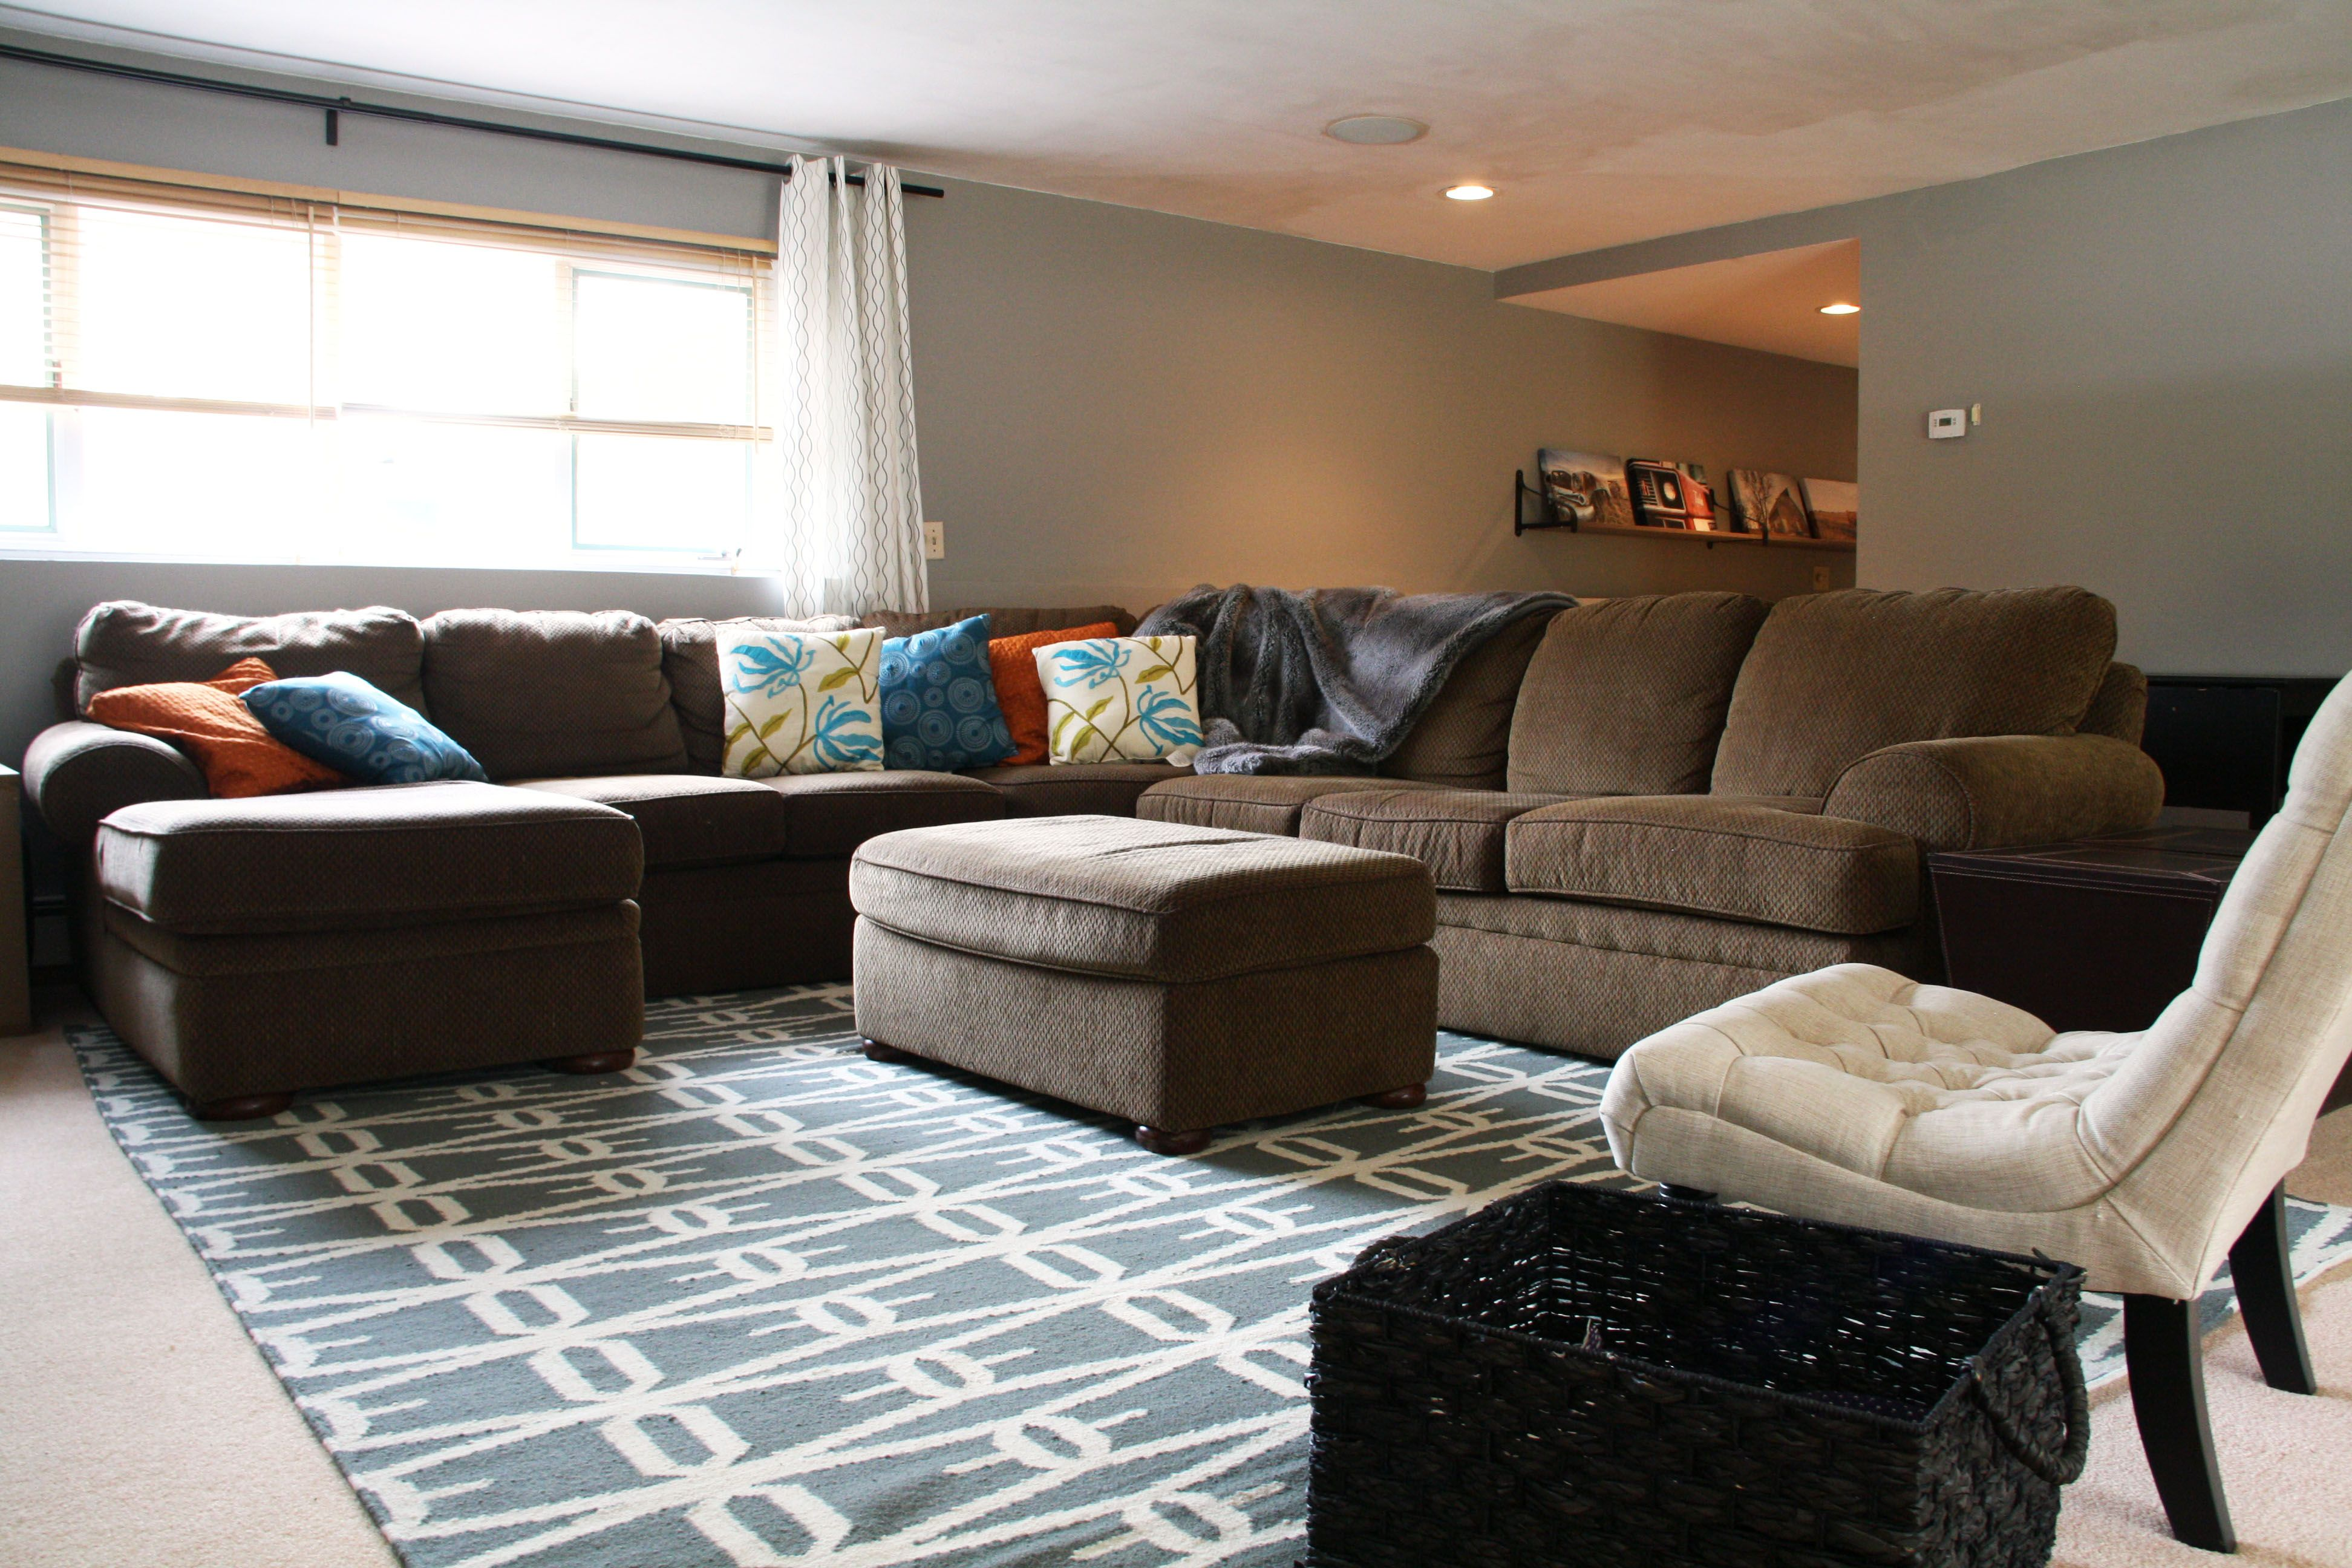 Inspiring Joss And Main Rugs For Interior Room Decor Ideas: Gray Pattern  Joss And Main Rugs In Family Room With Brown Sofa